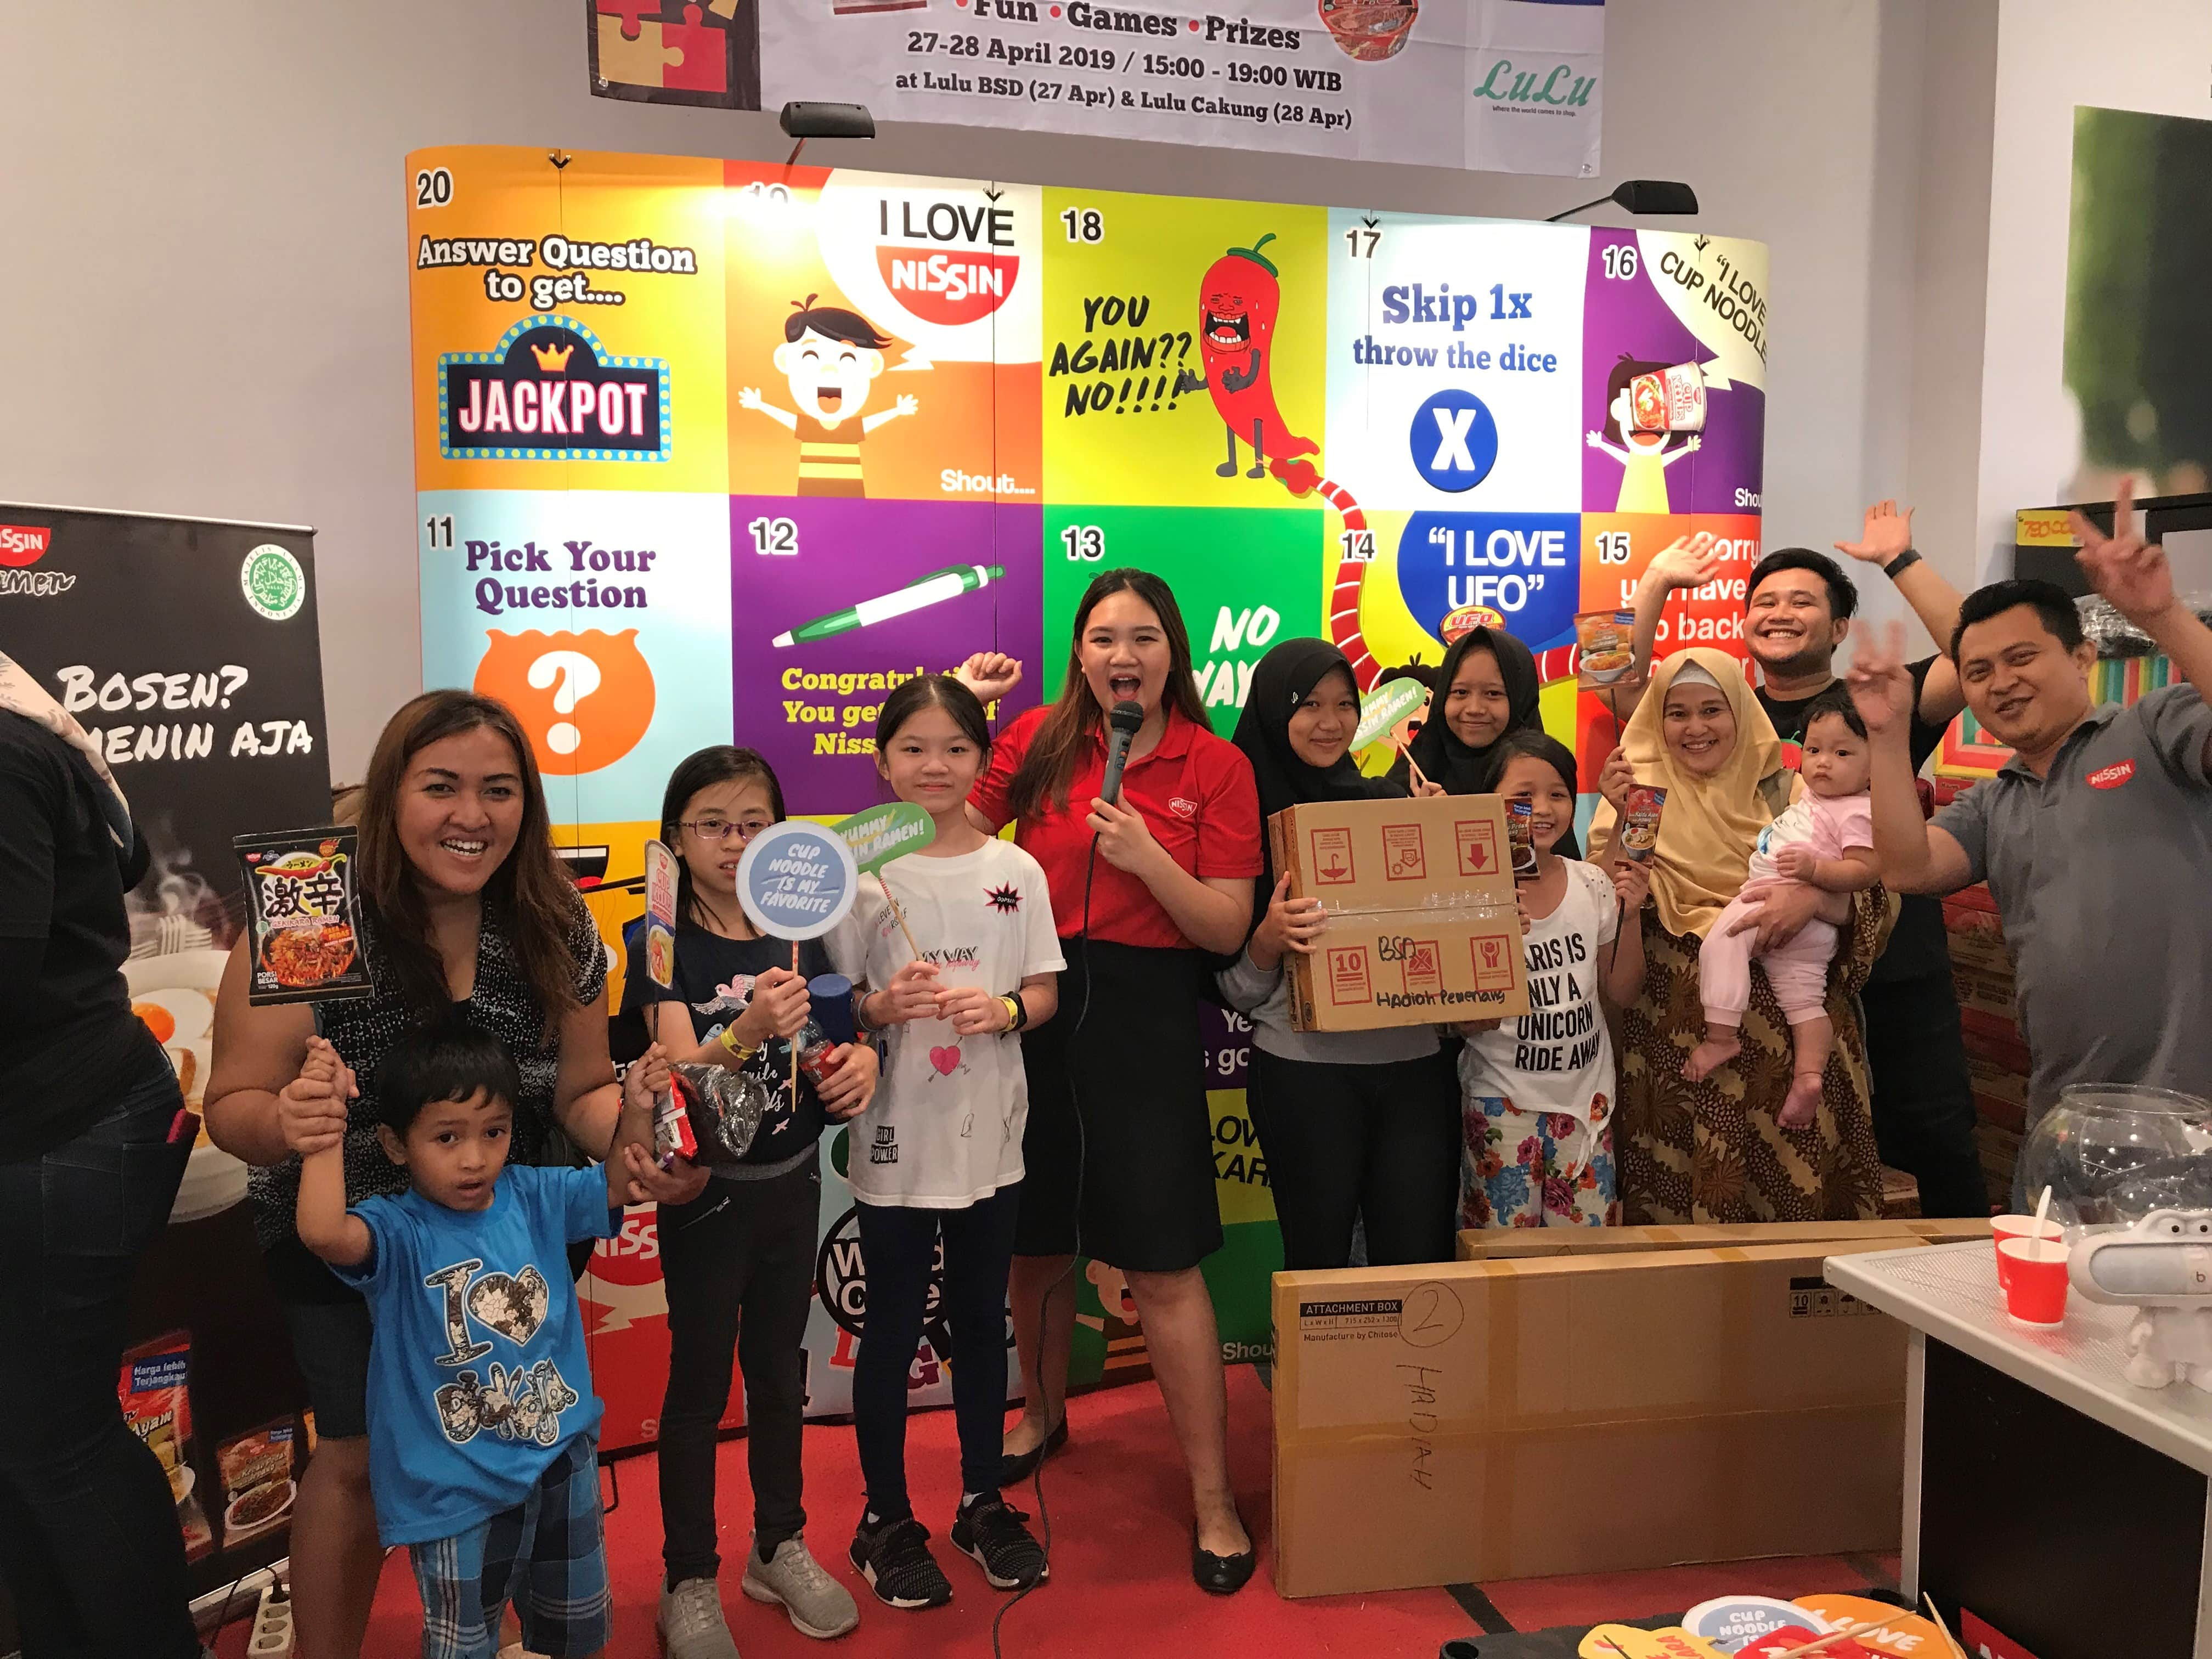 Nissin Playground at Lulu BSD and Lulu Cakung